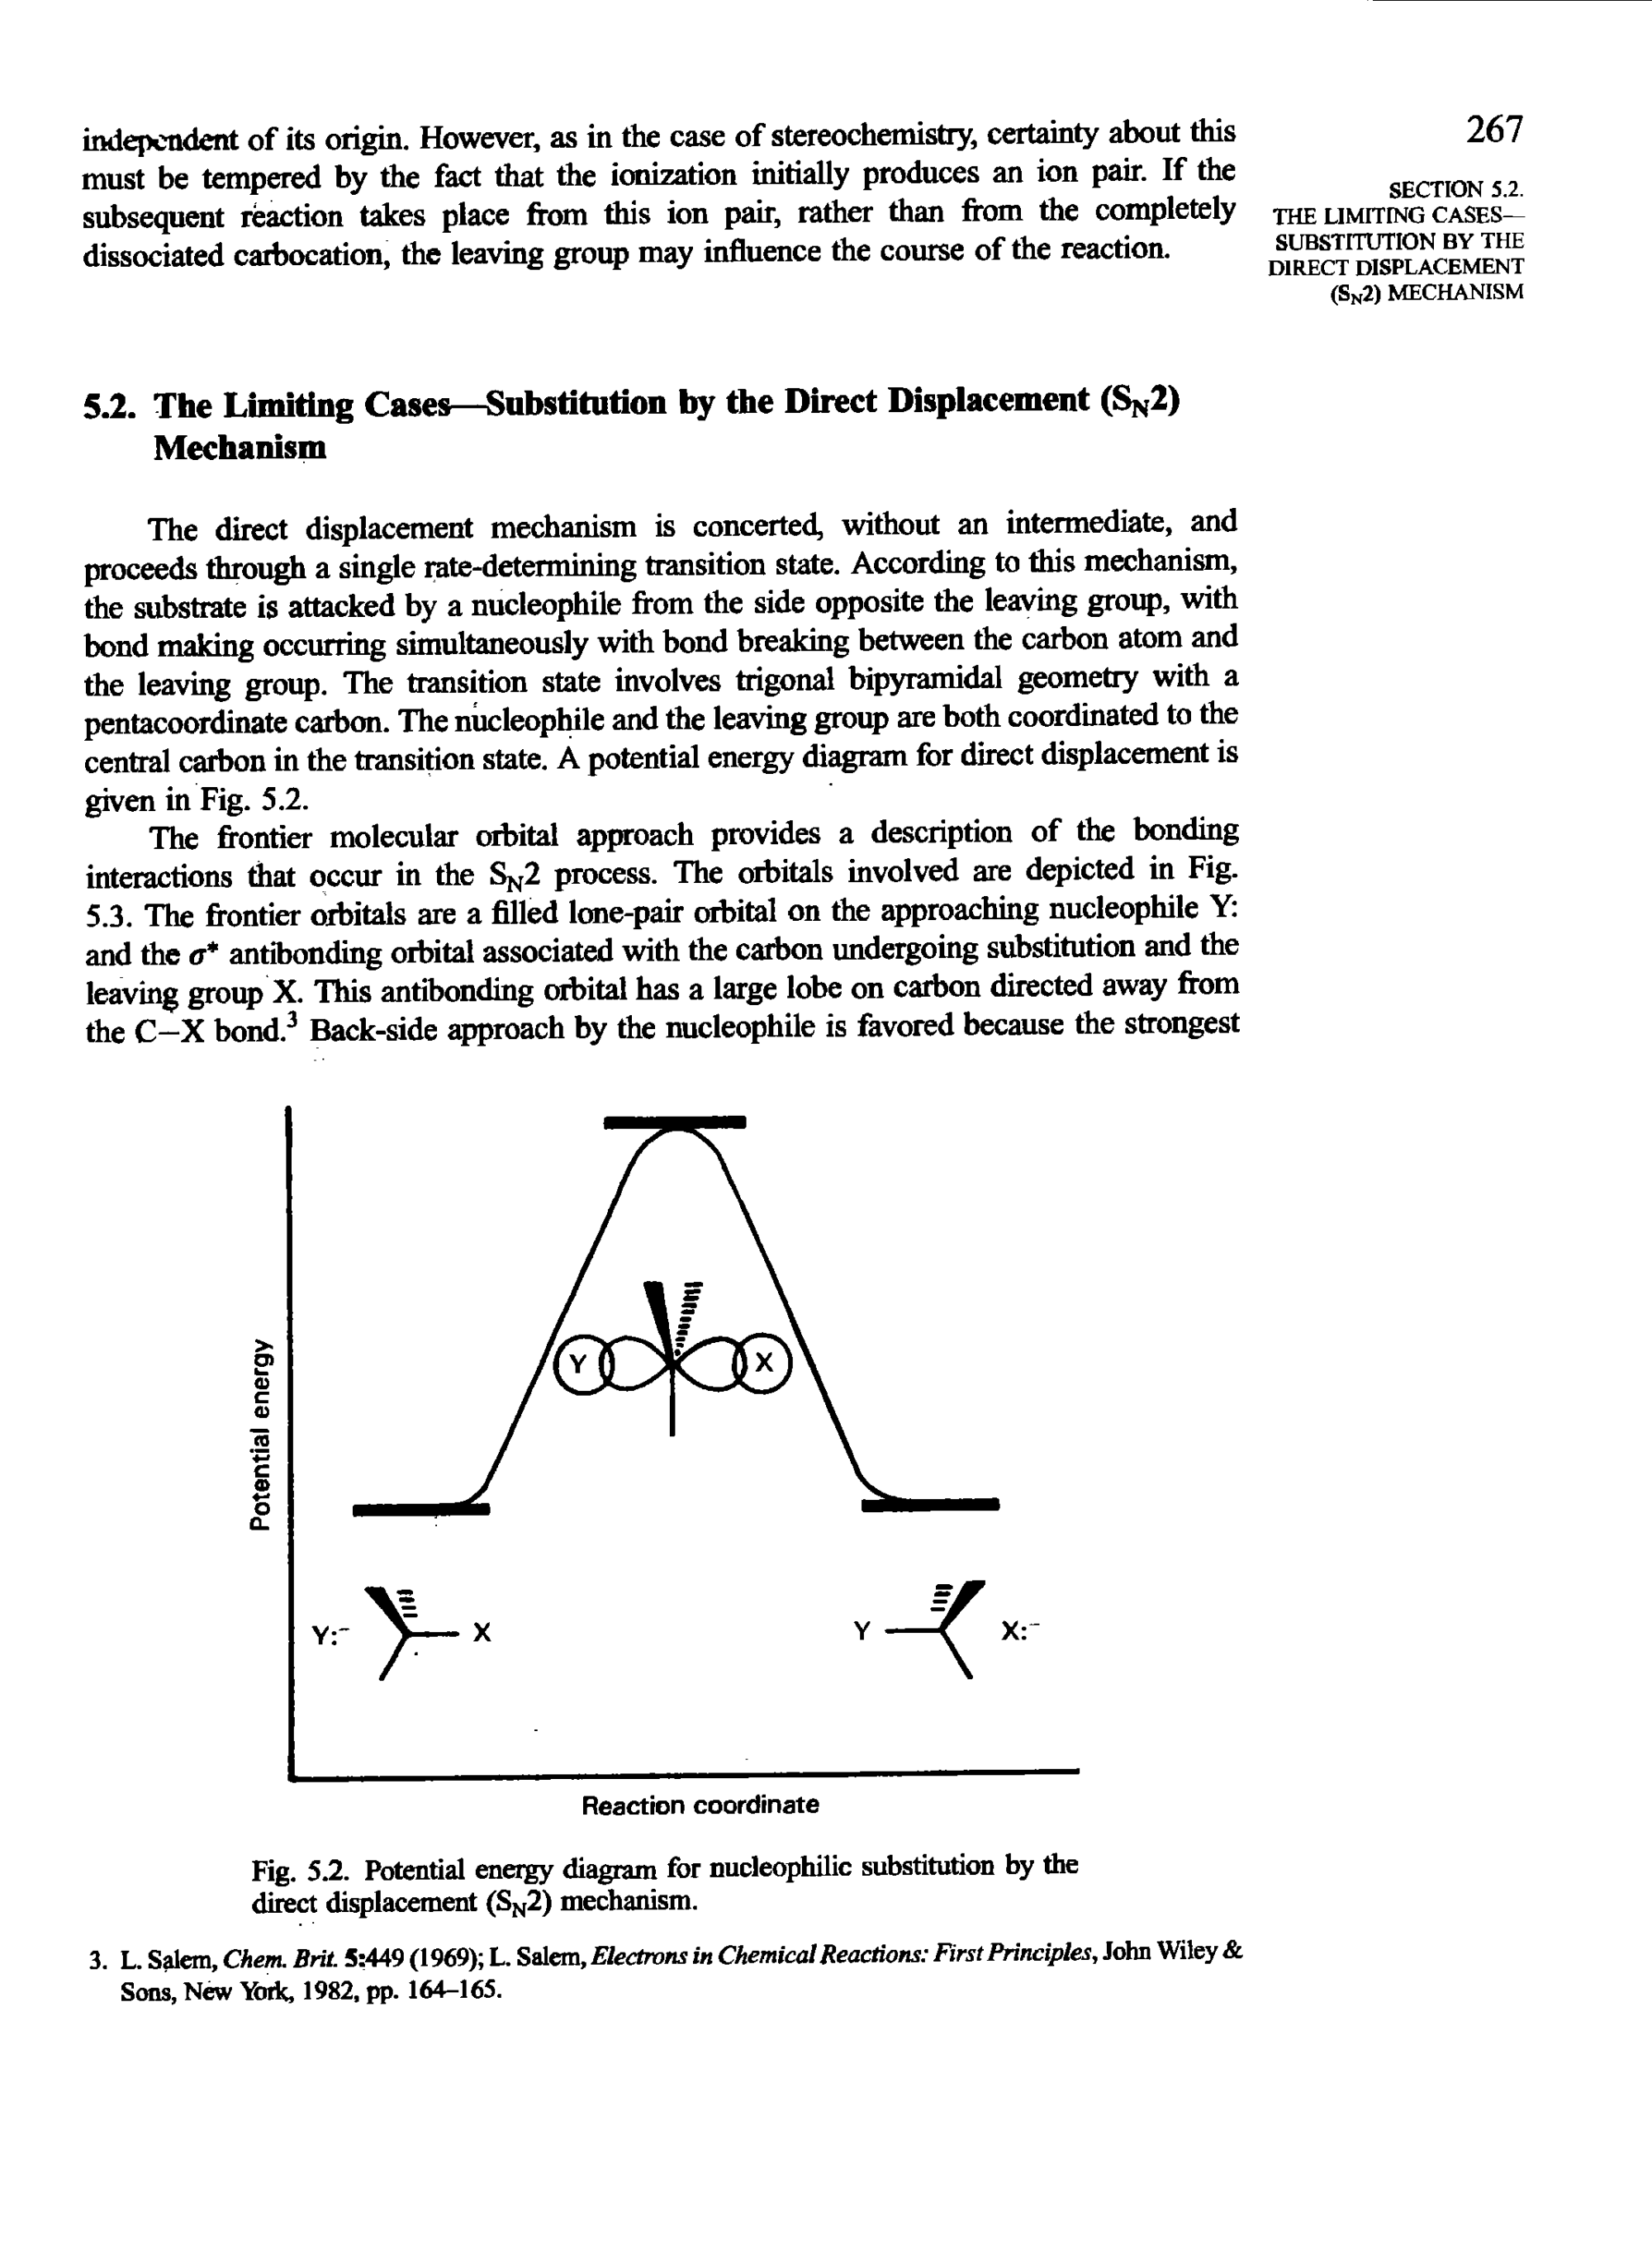 hight resolution of big chemical encyclopedia